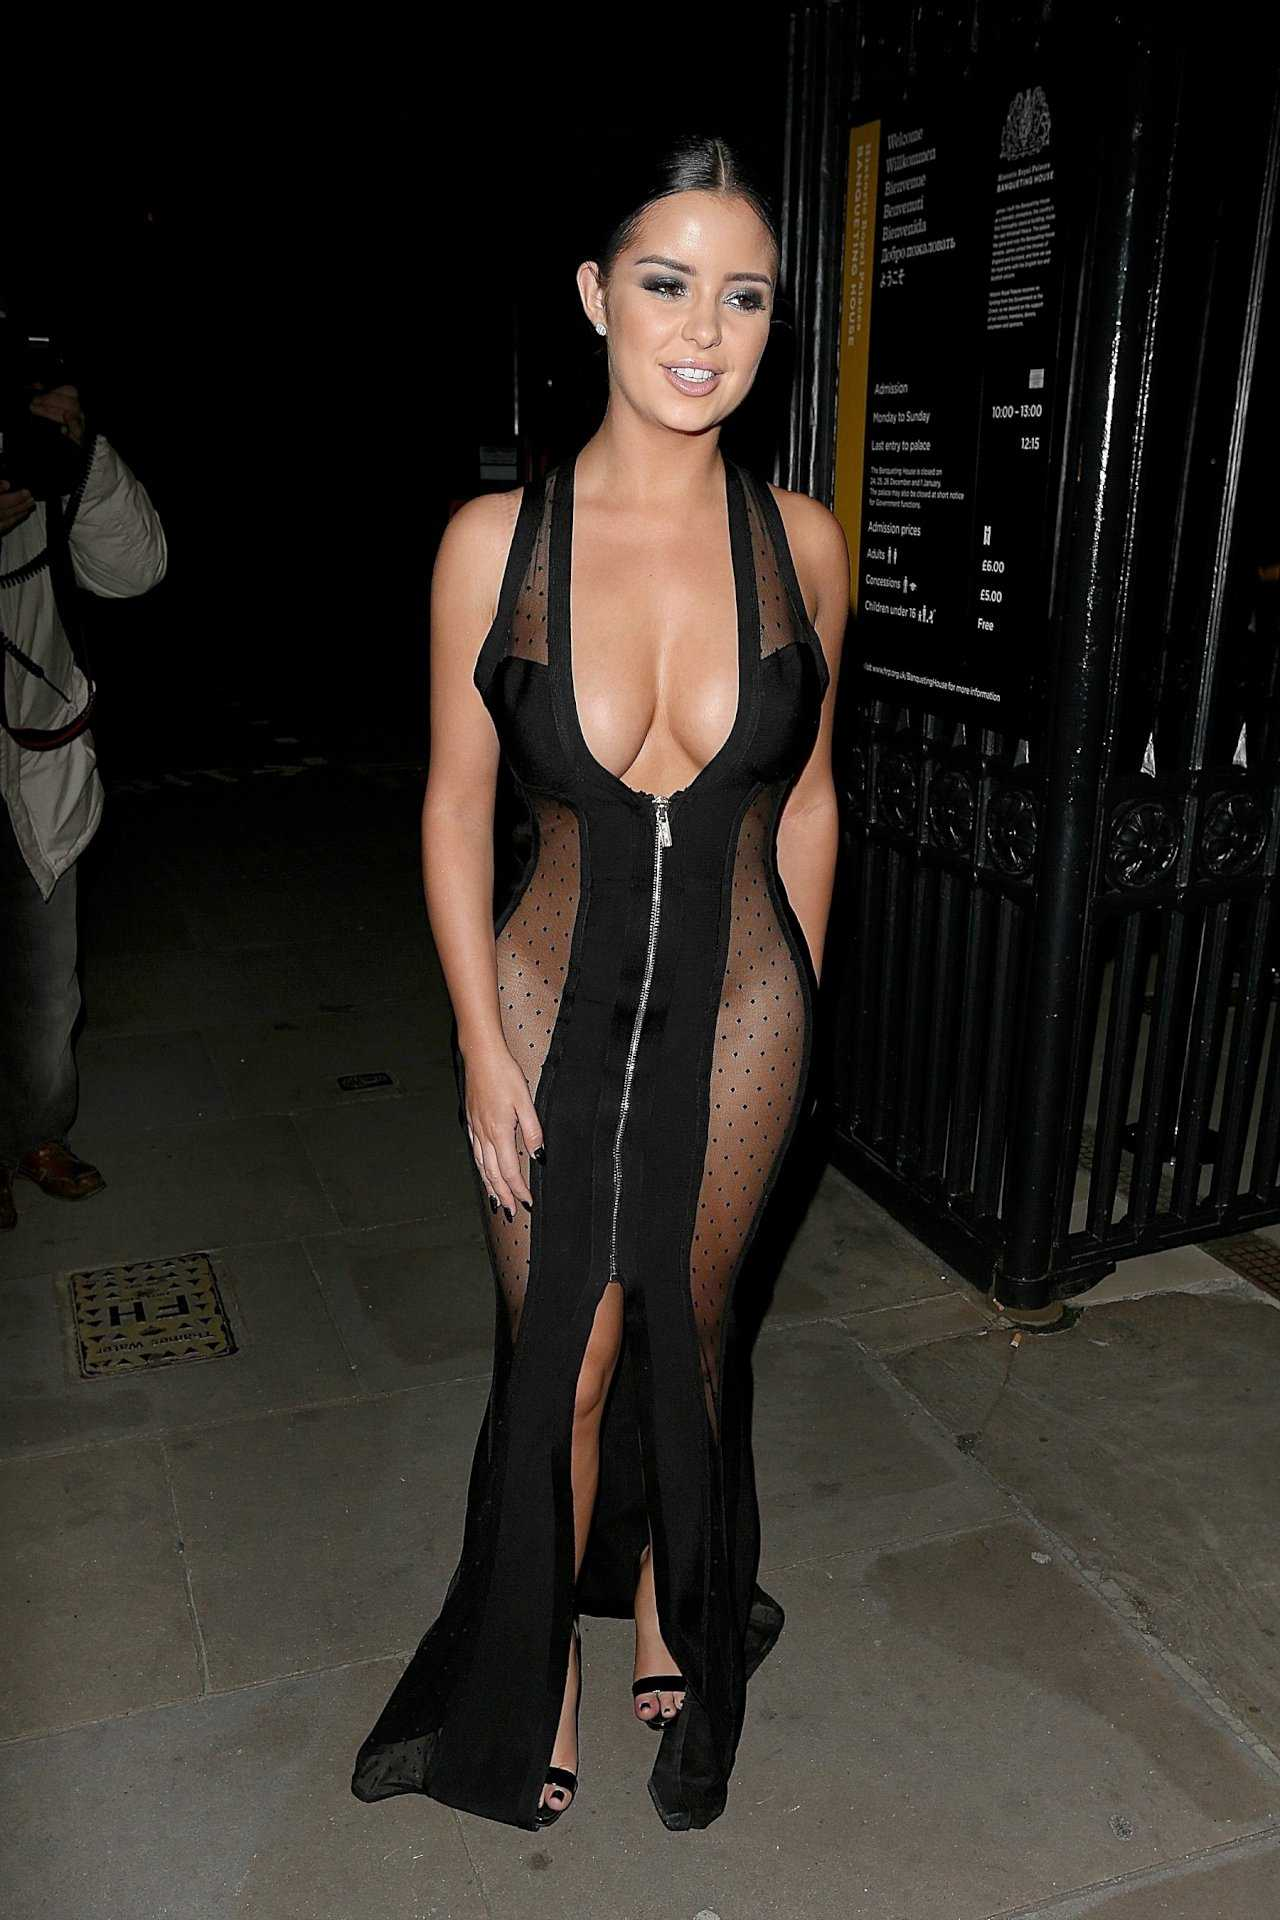 demi-rose-e-seu-vestido-sexy-no-beauty-awards-em-londres01